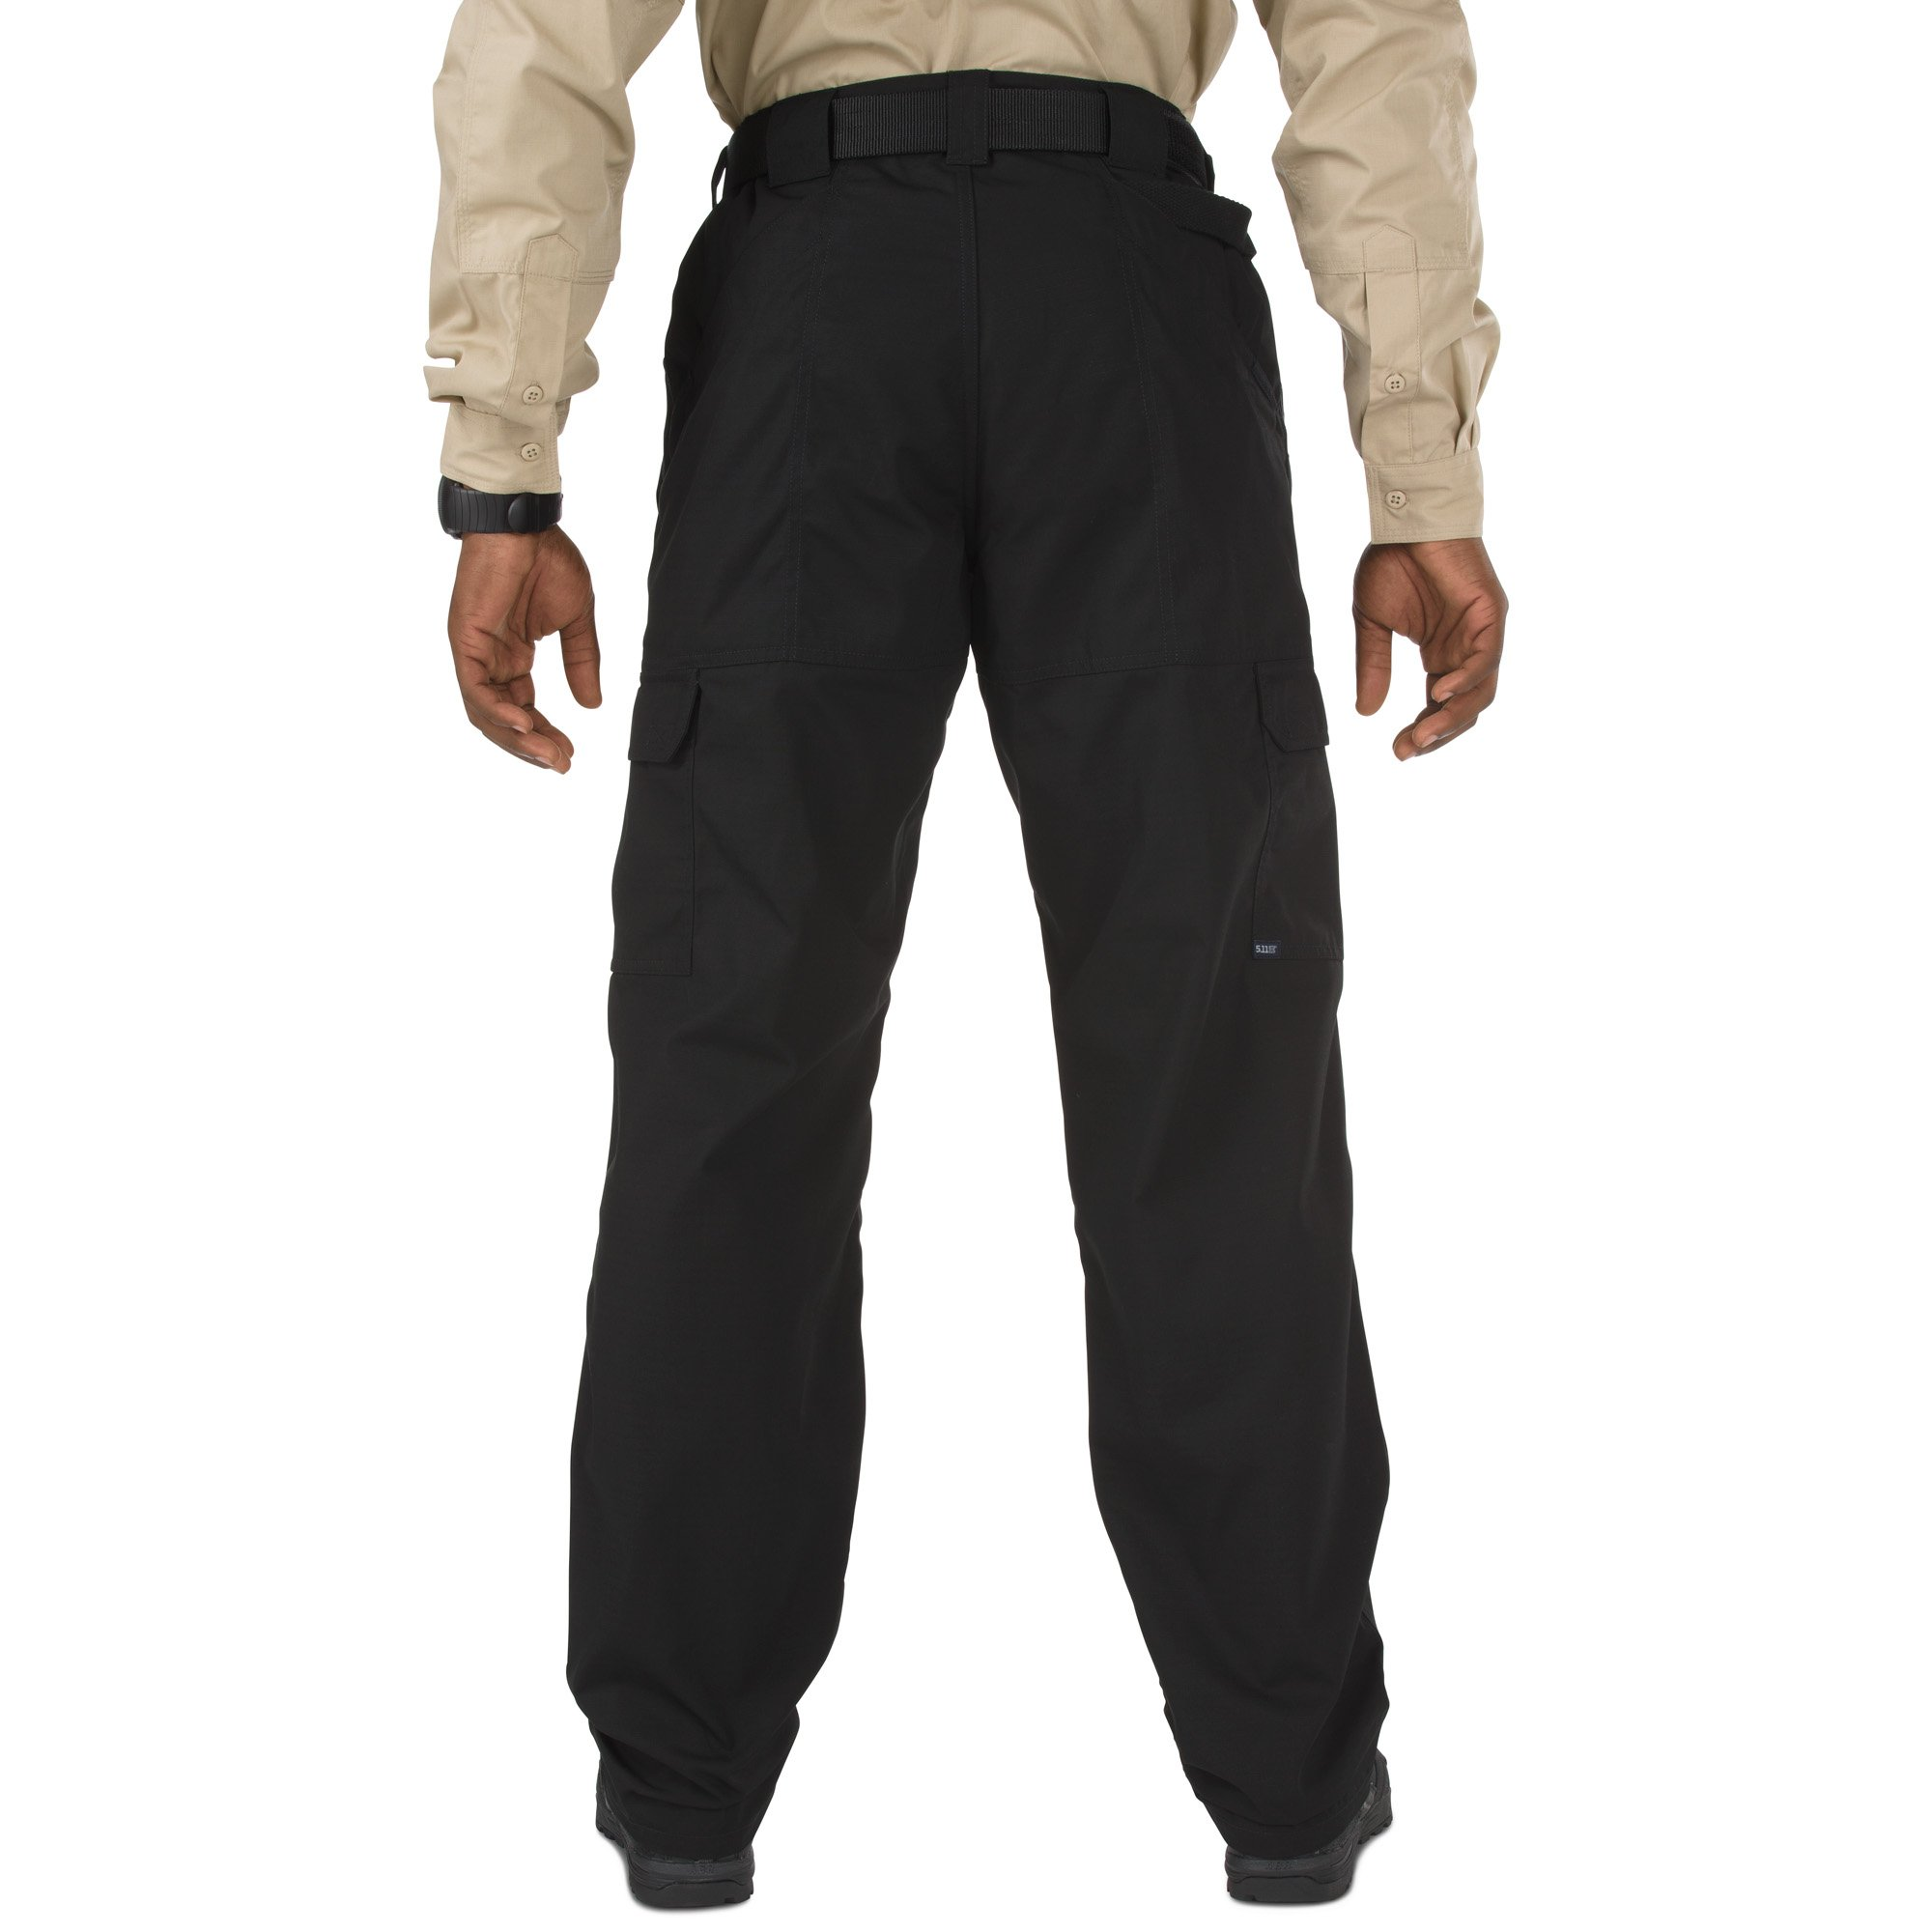 5.11 Men's TACLITE Pro Tactical Pants, Style 74273, Black, 40Wx32L by 5.11 (Image #2)